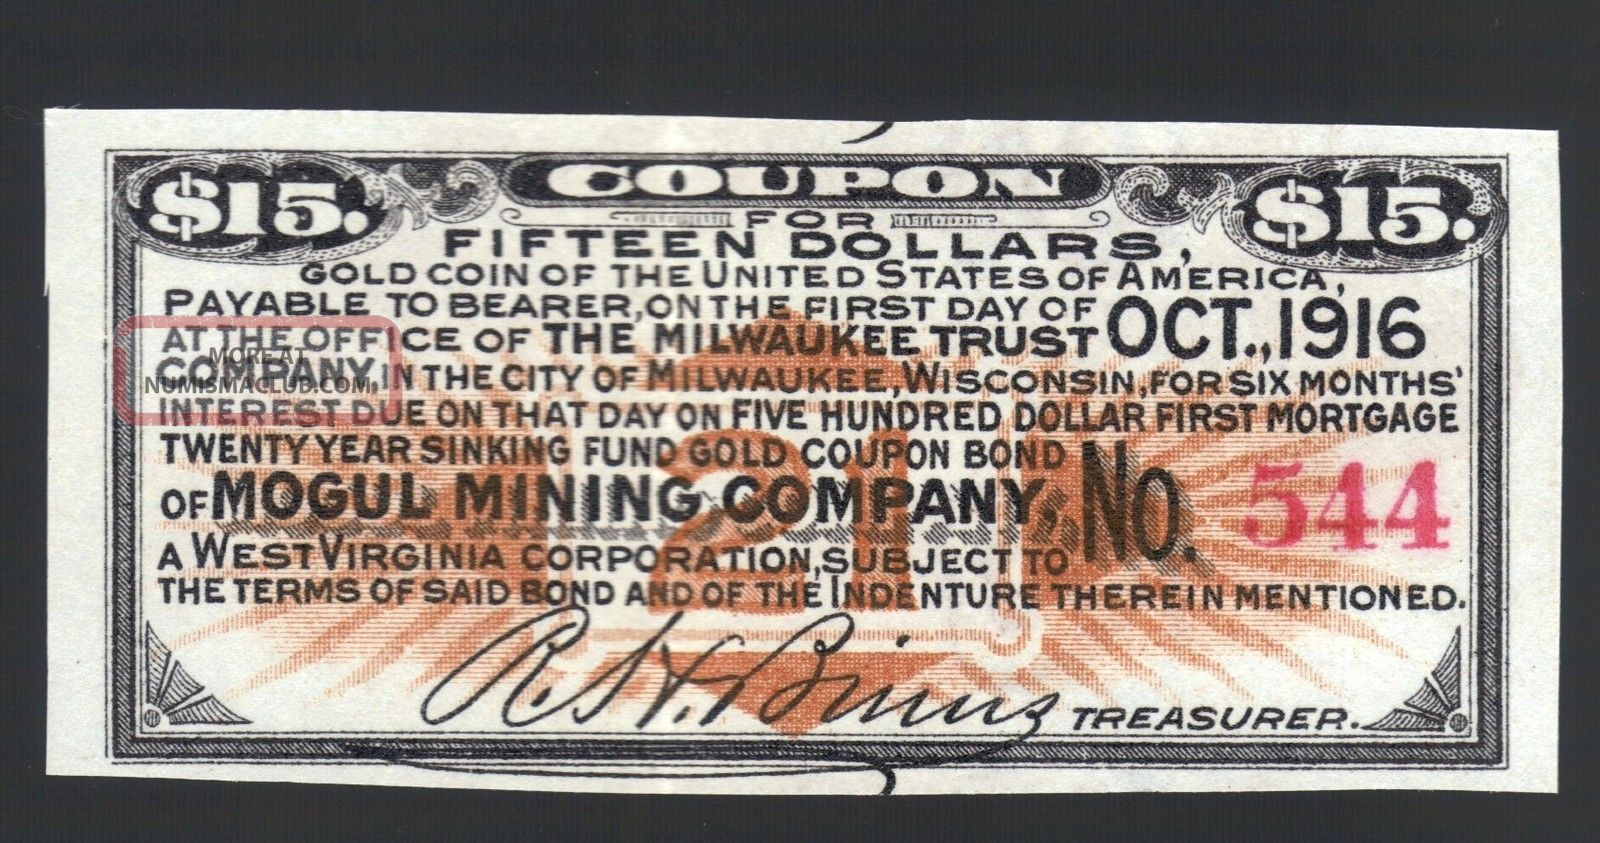 $15 Gold Coin 1916 Mogul Mining Co Usa Wva Wi Gold Bond Old Paper Money Coupon Stocks & Bonds, Scripophily photo